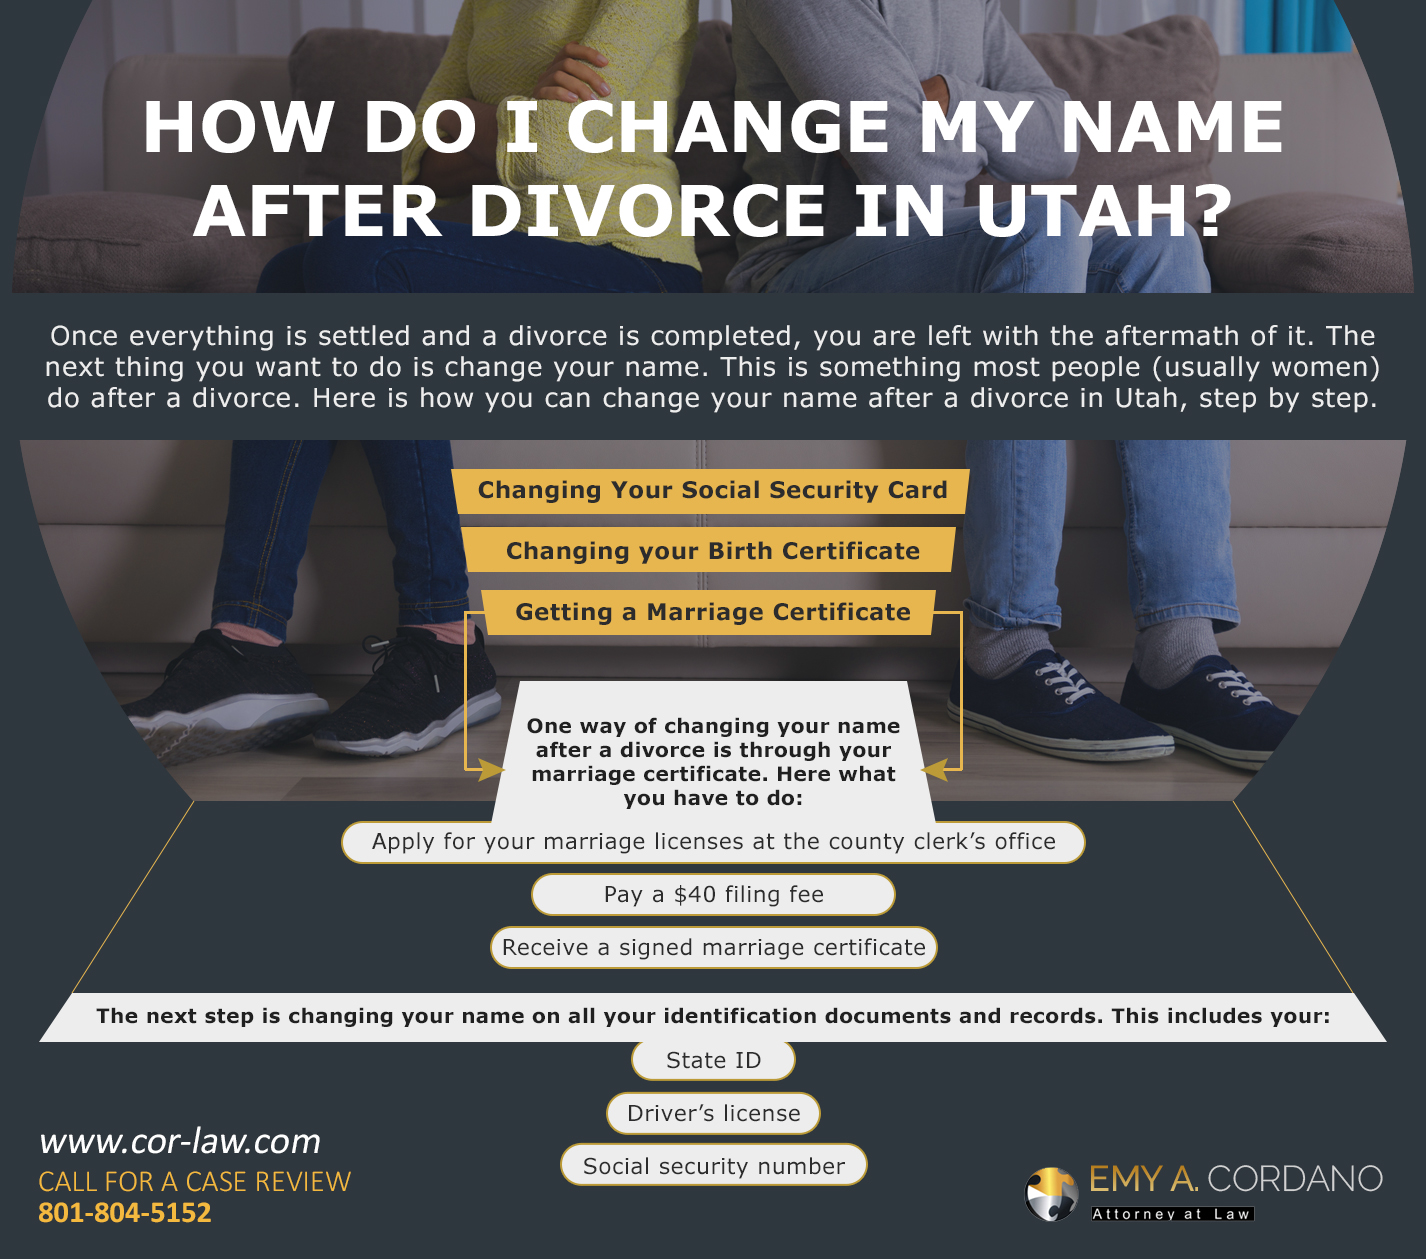 How Do I Change My Name After Divorce in Utah?